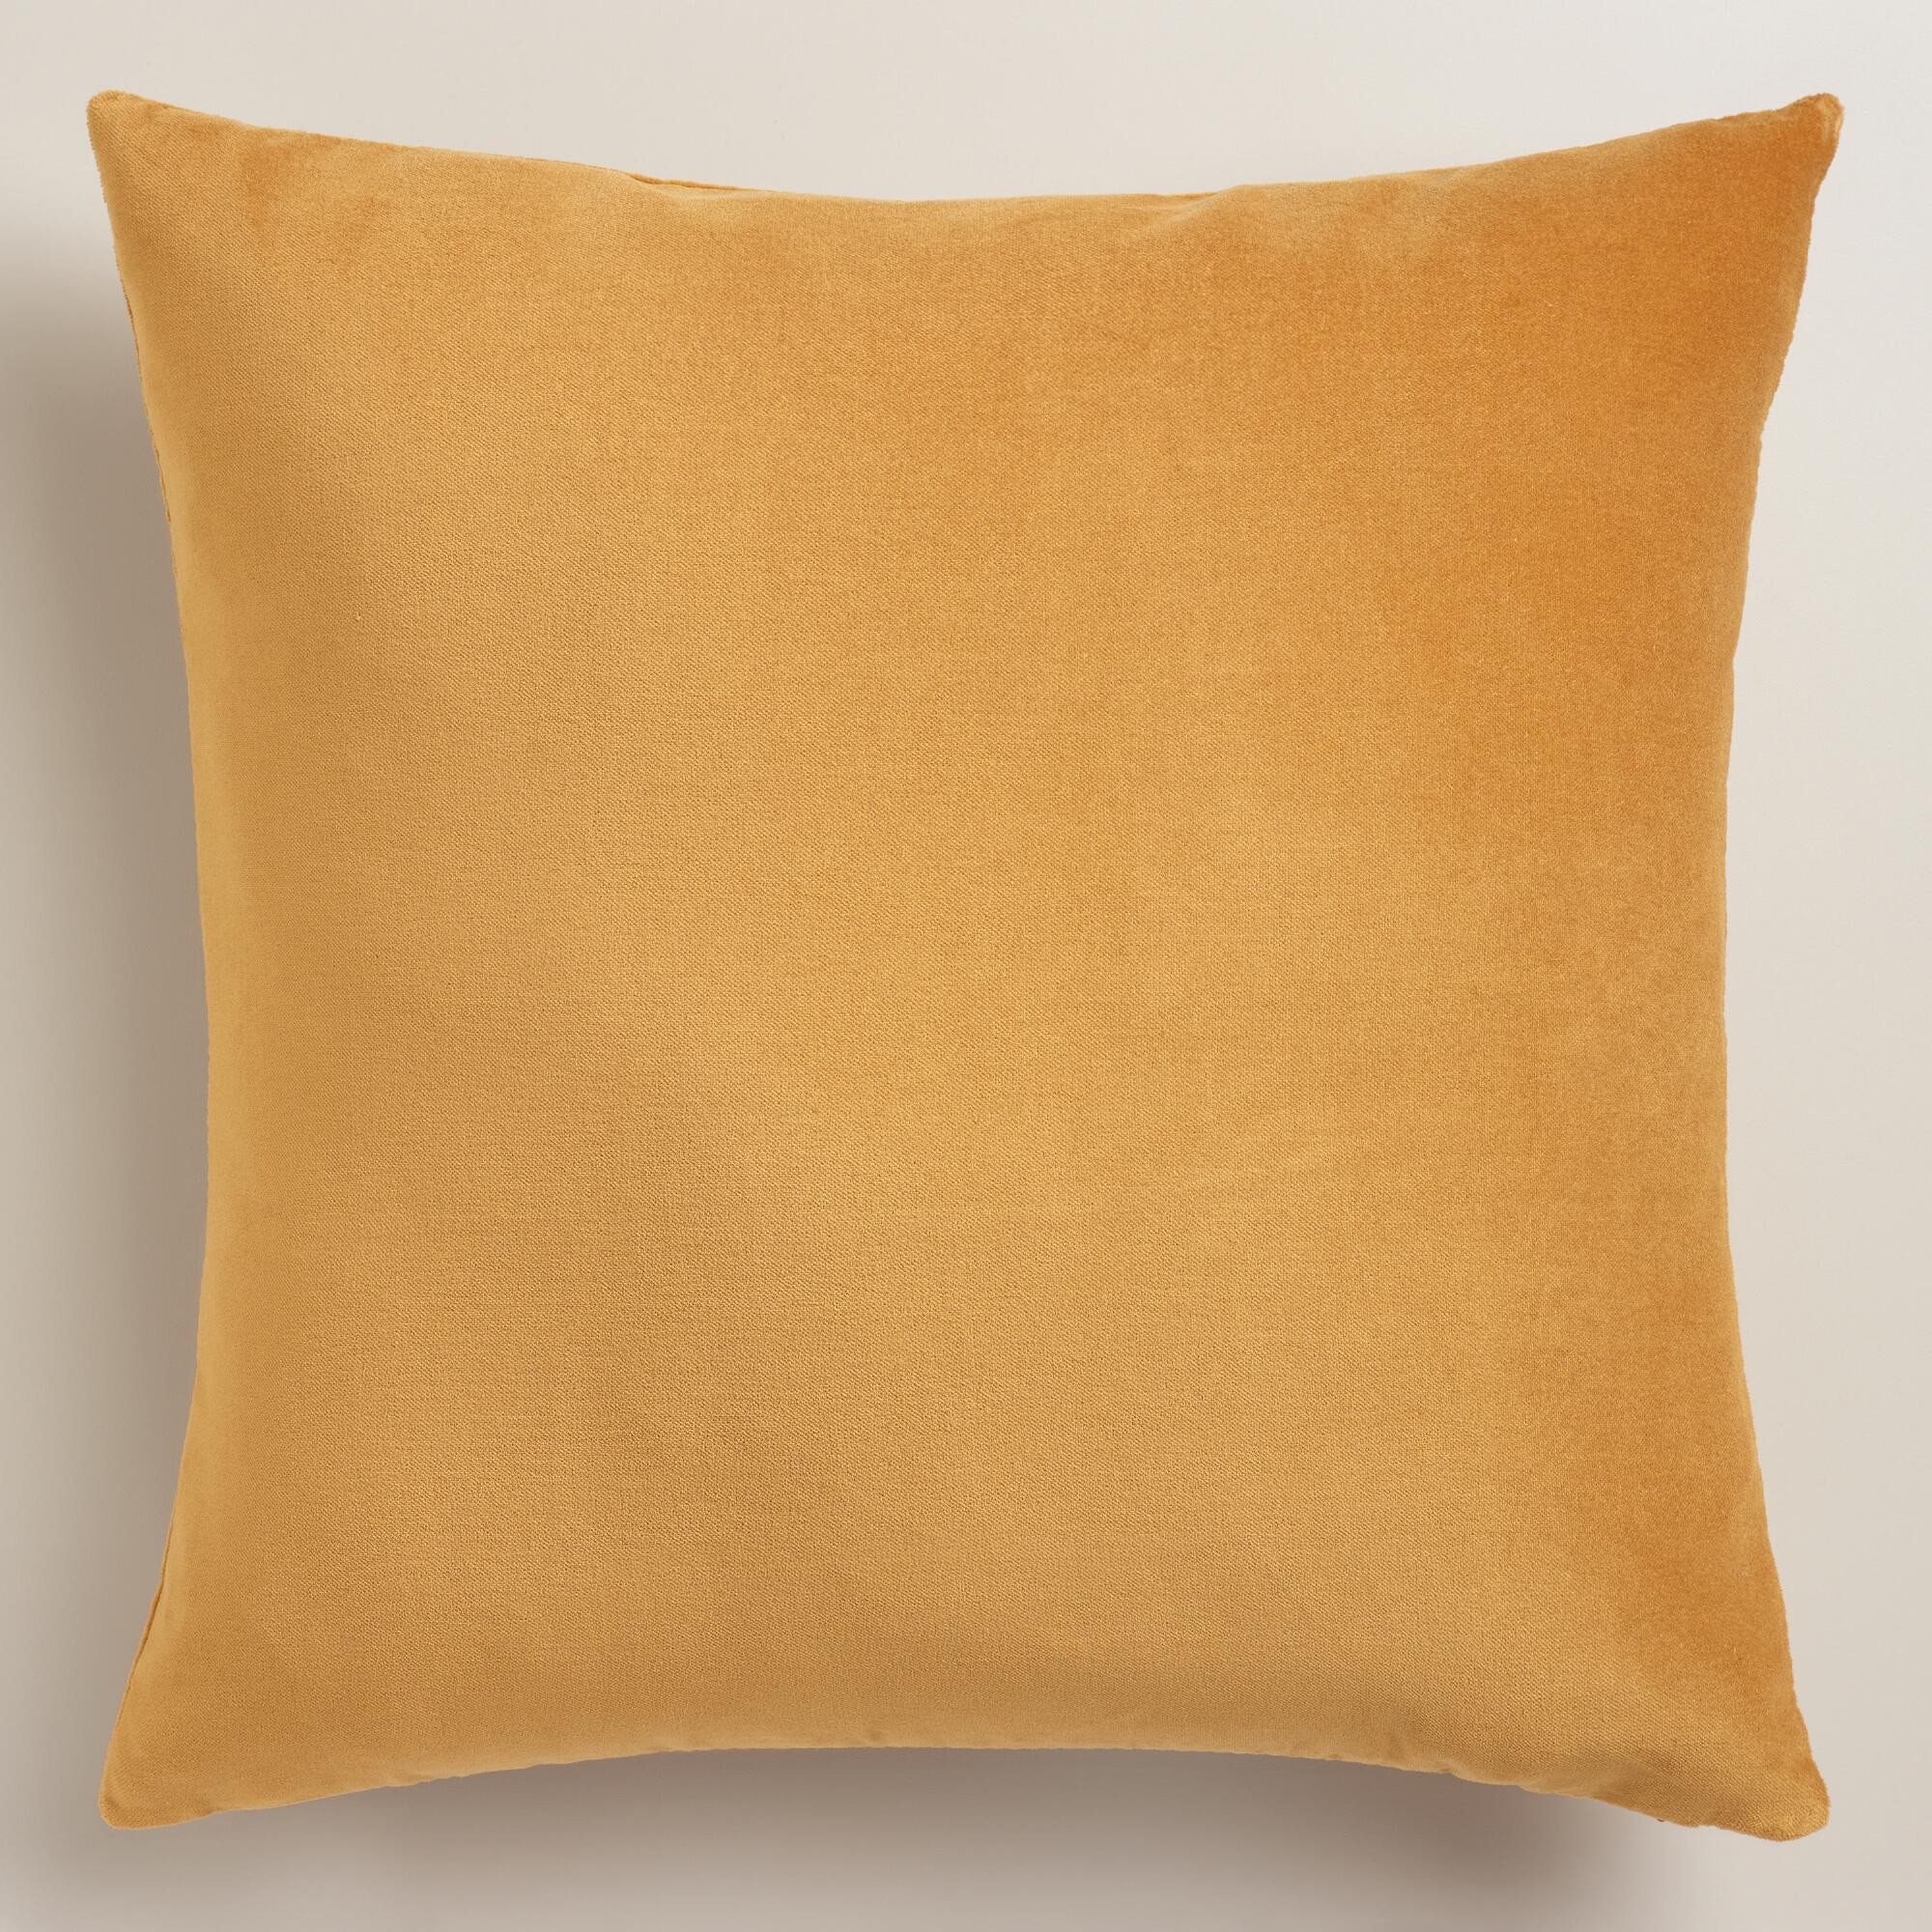 Throw Pillows Velvet : Amber Gold Velvet Throw Pillow World Market